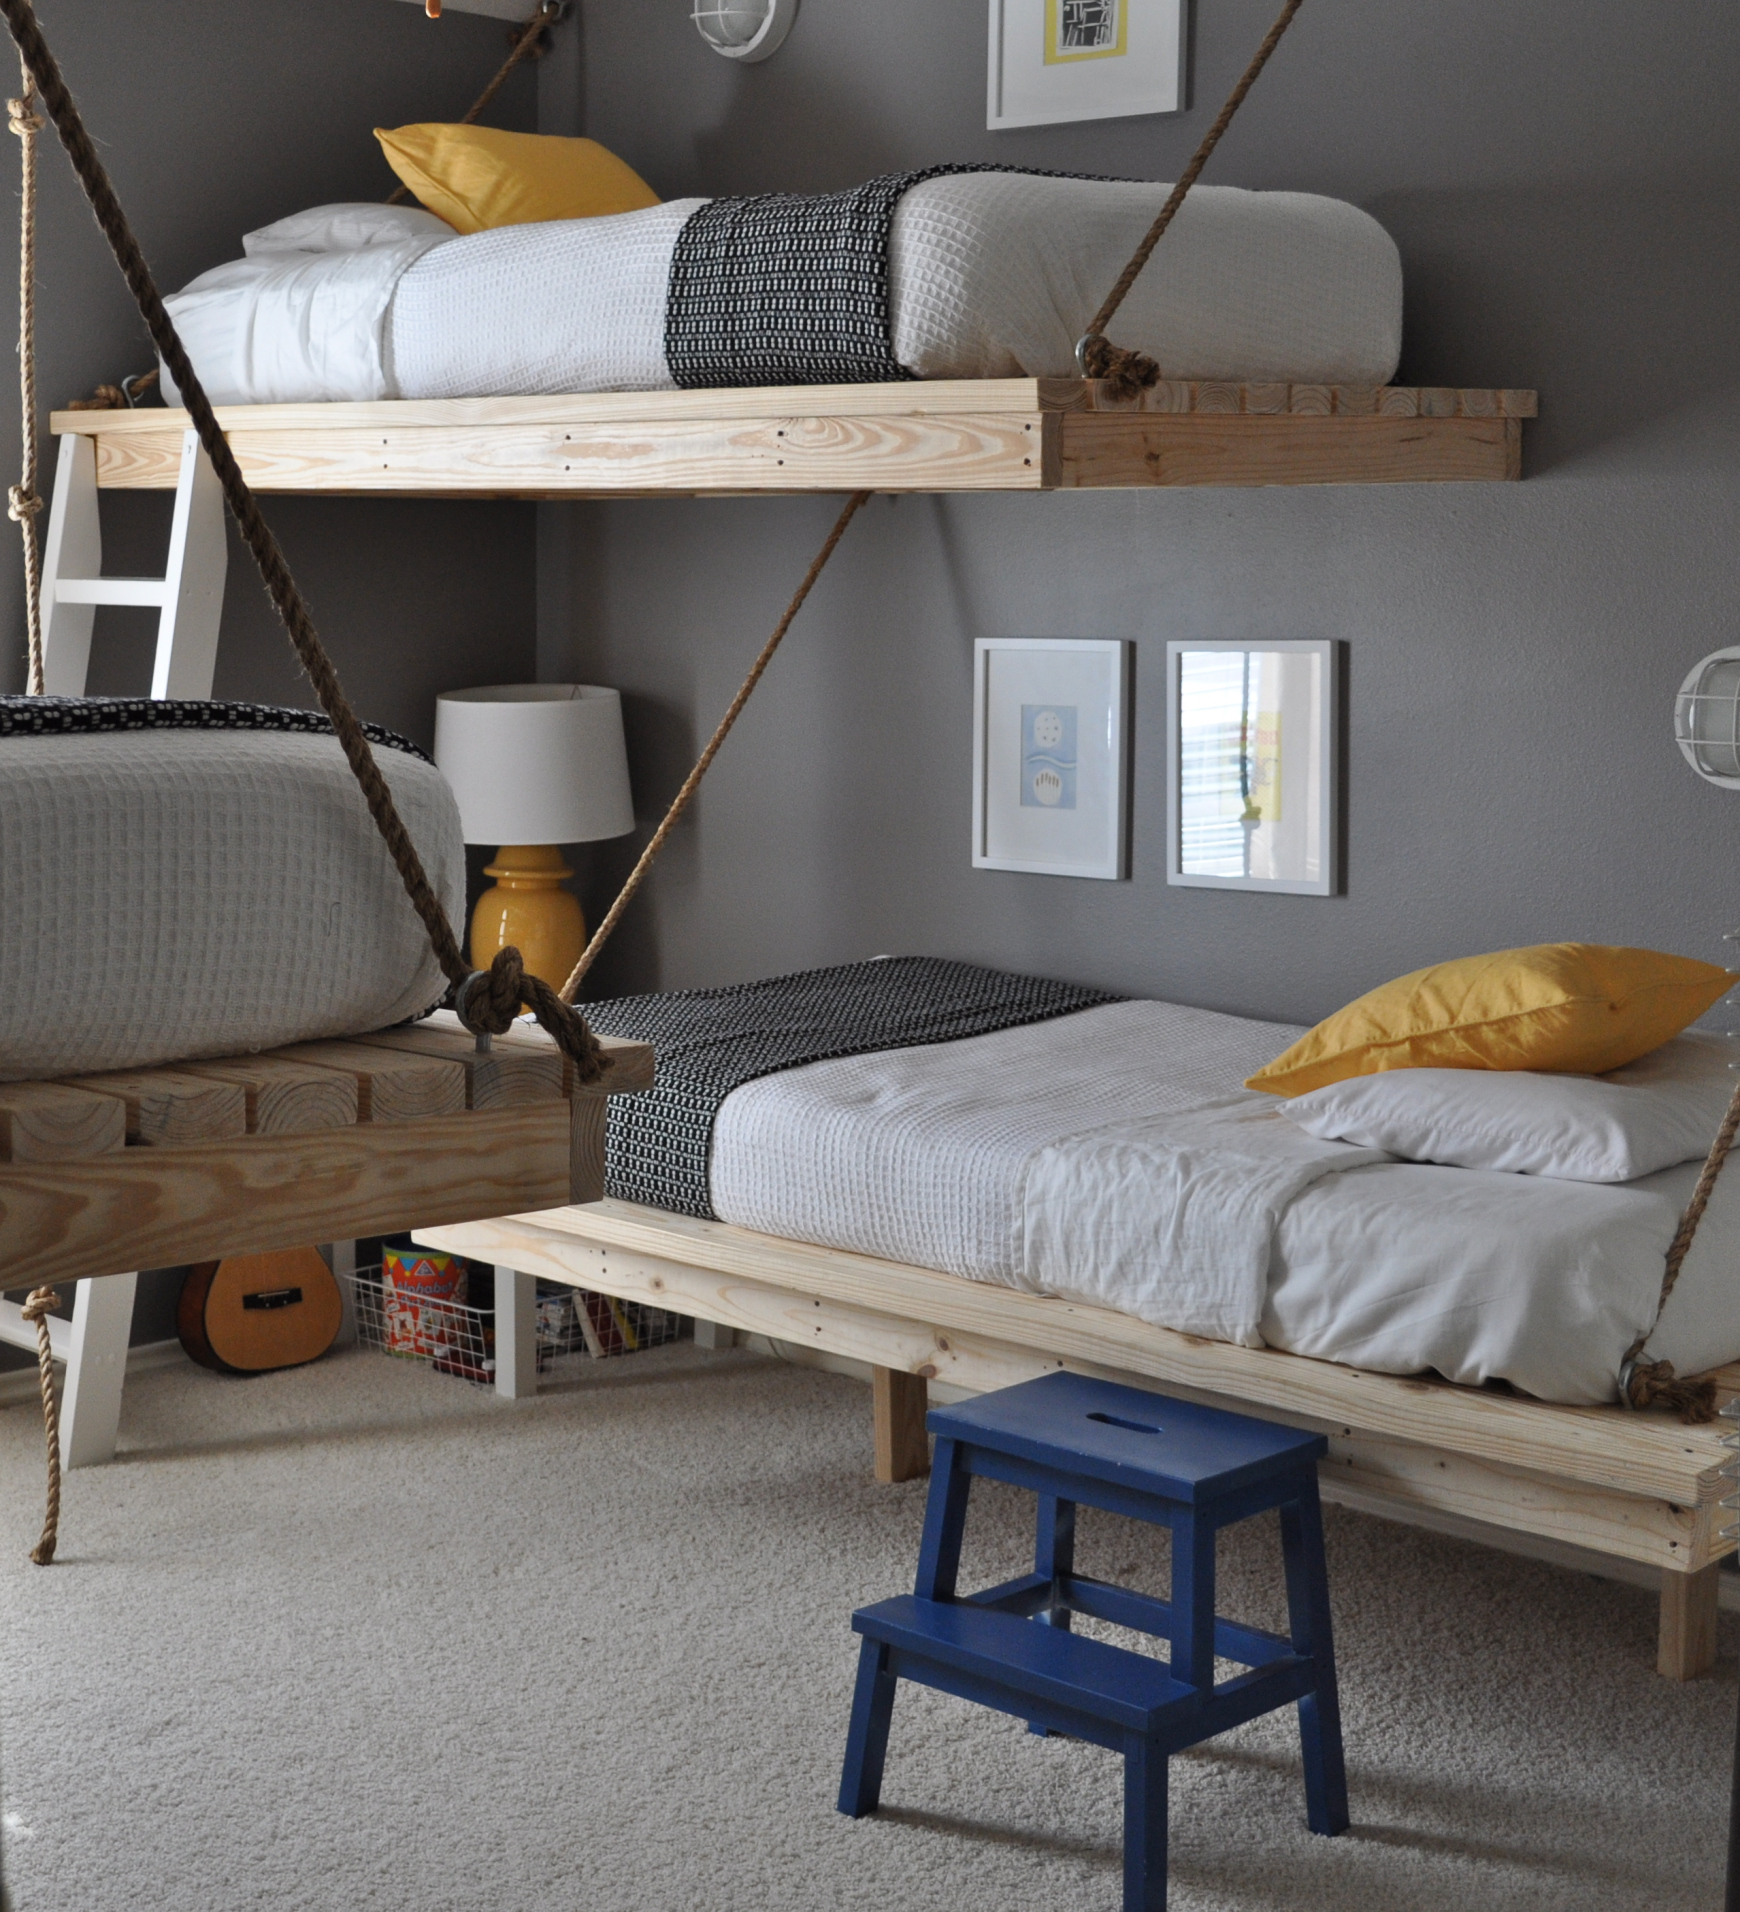 Saturn Bunk Bed 14 Unbelievably Amazing Bunk Beds Kids And Adults Will Love